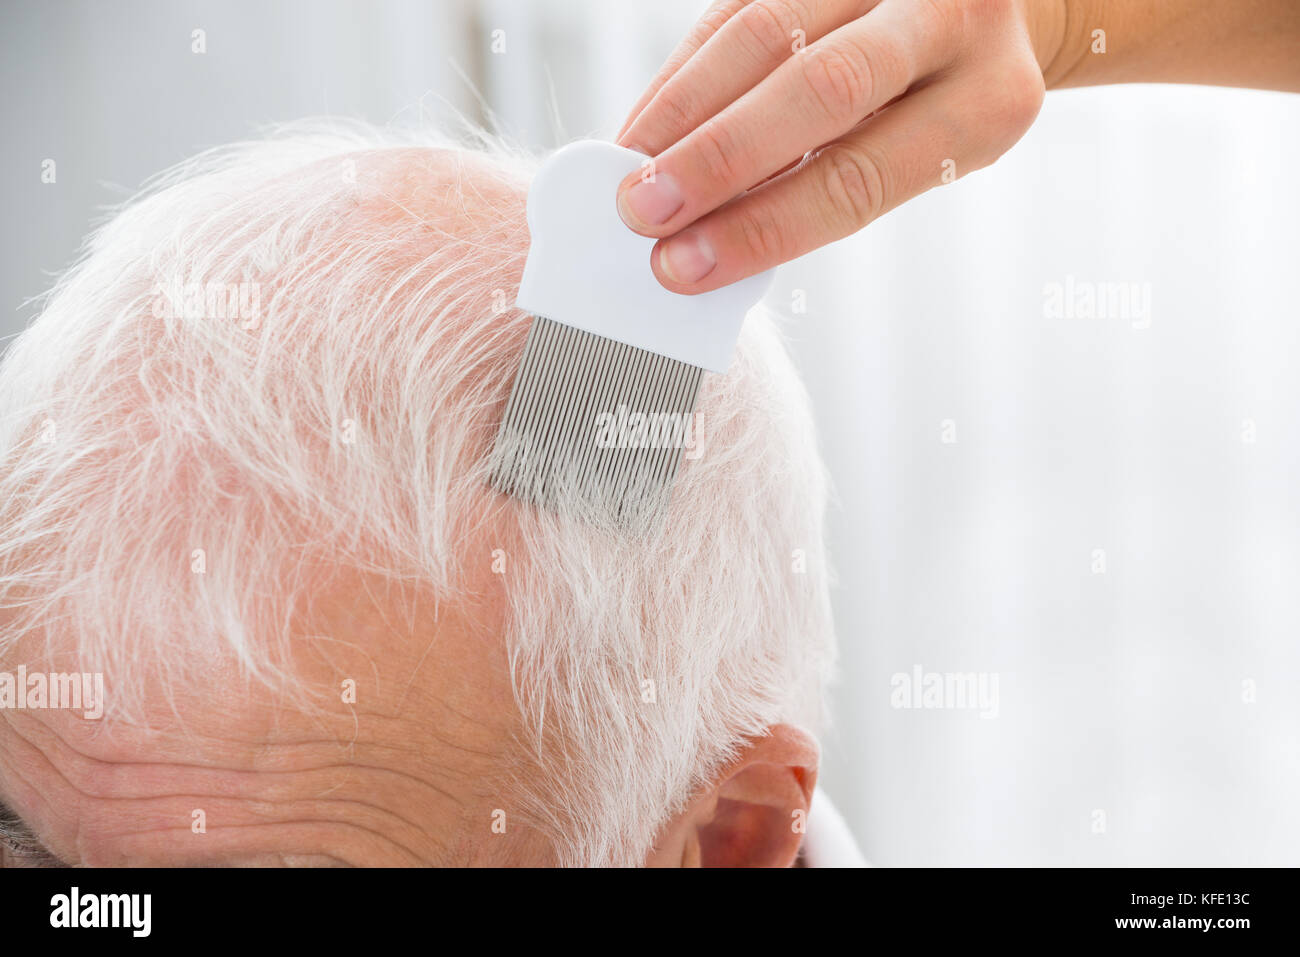 Close-up Of Doctor Doing Treatment On Senior Patient's Hair With Comb Stock Photo